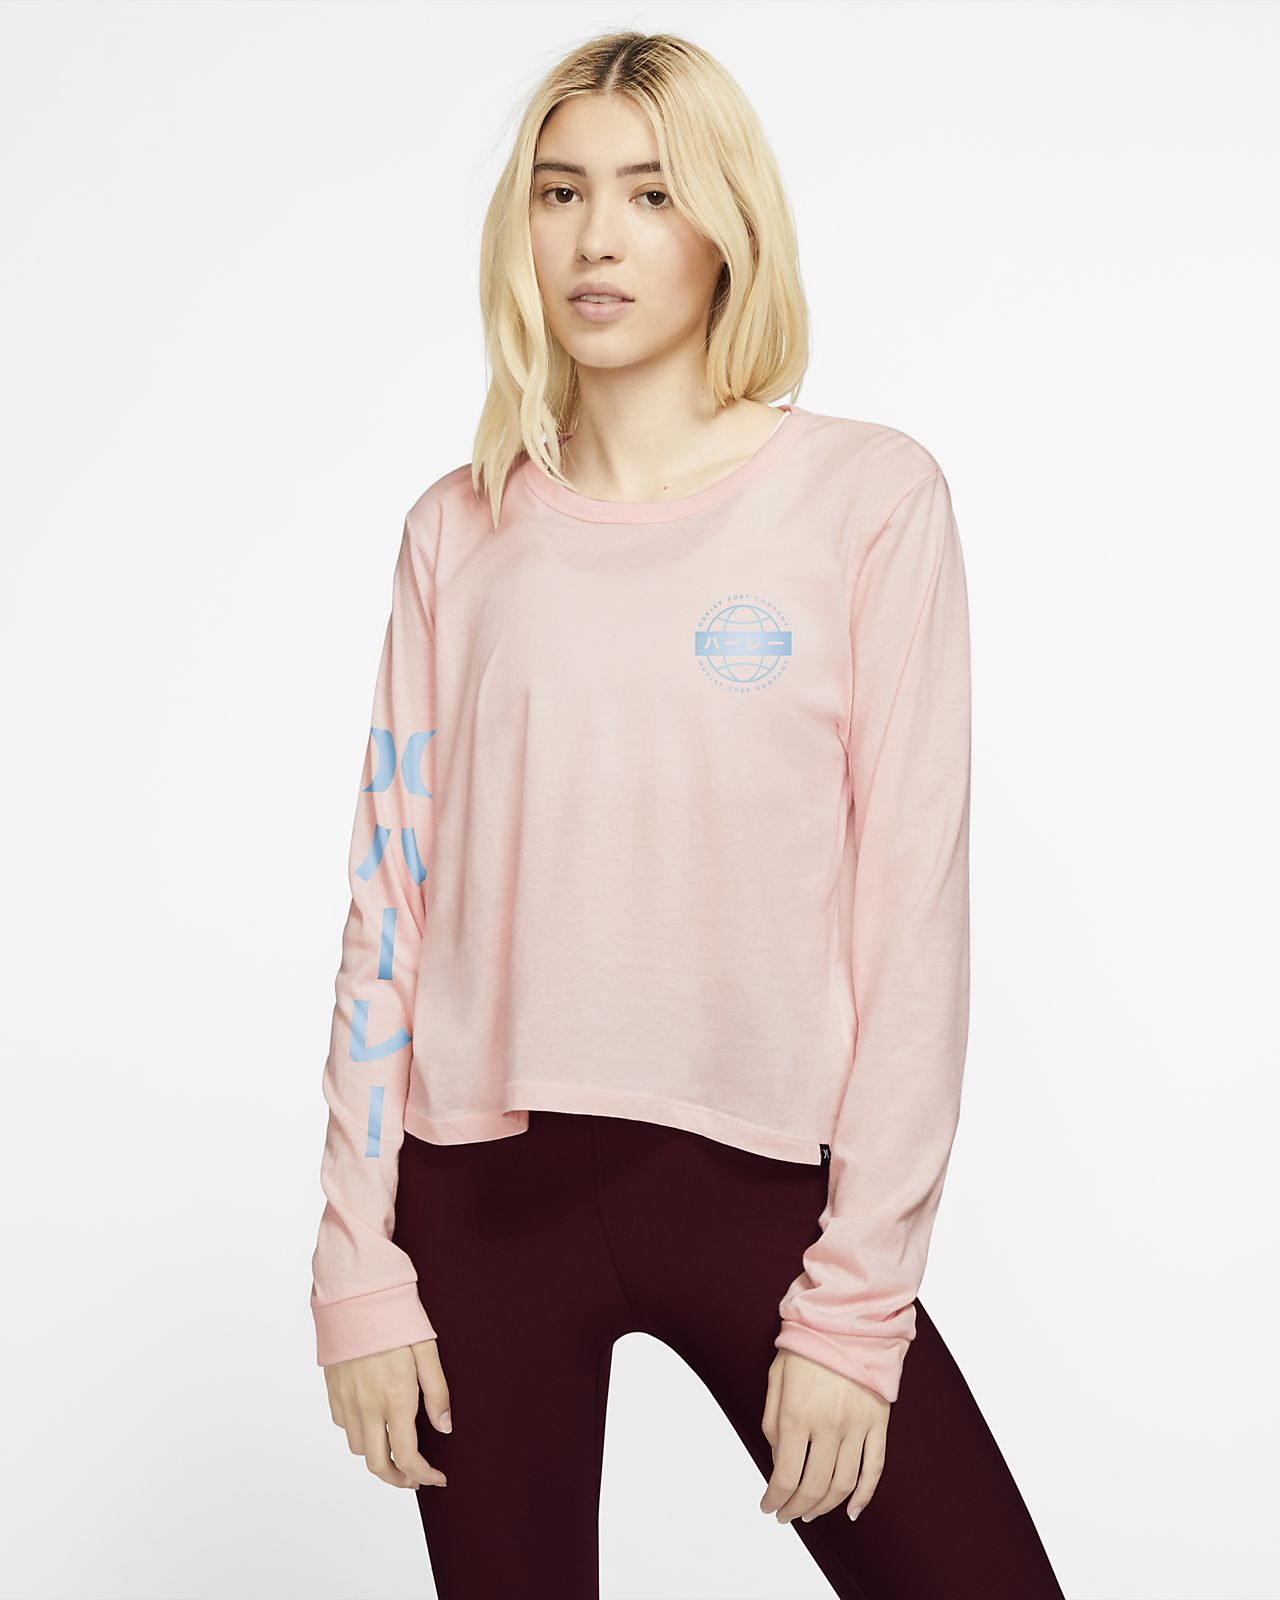 Hurley Global Perfect Women's Long-Sleeve T-Shirt